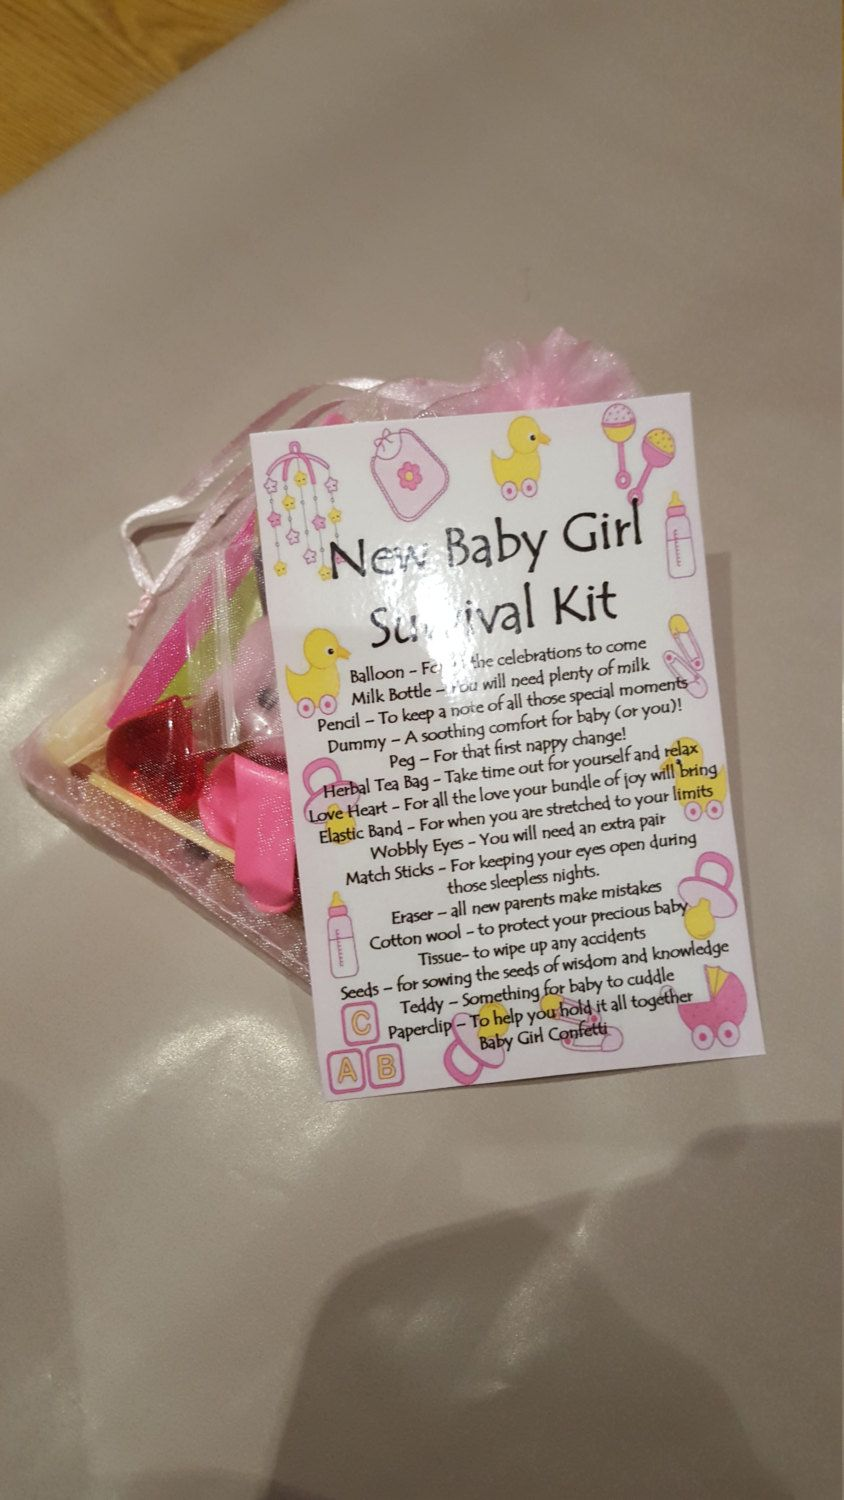 New Baby Girl Survival Kit Novelty Gift For A Friend Or